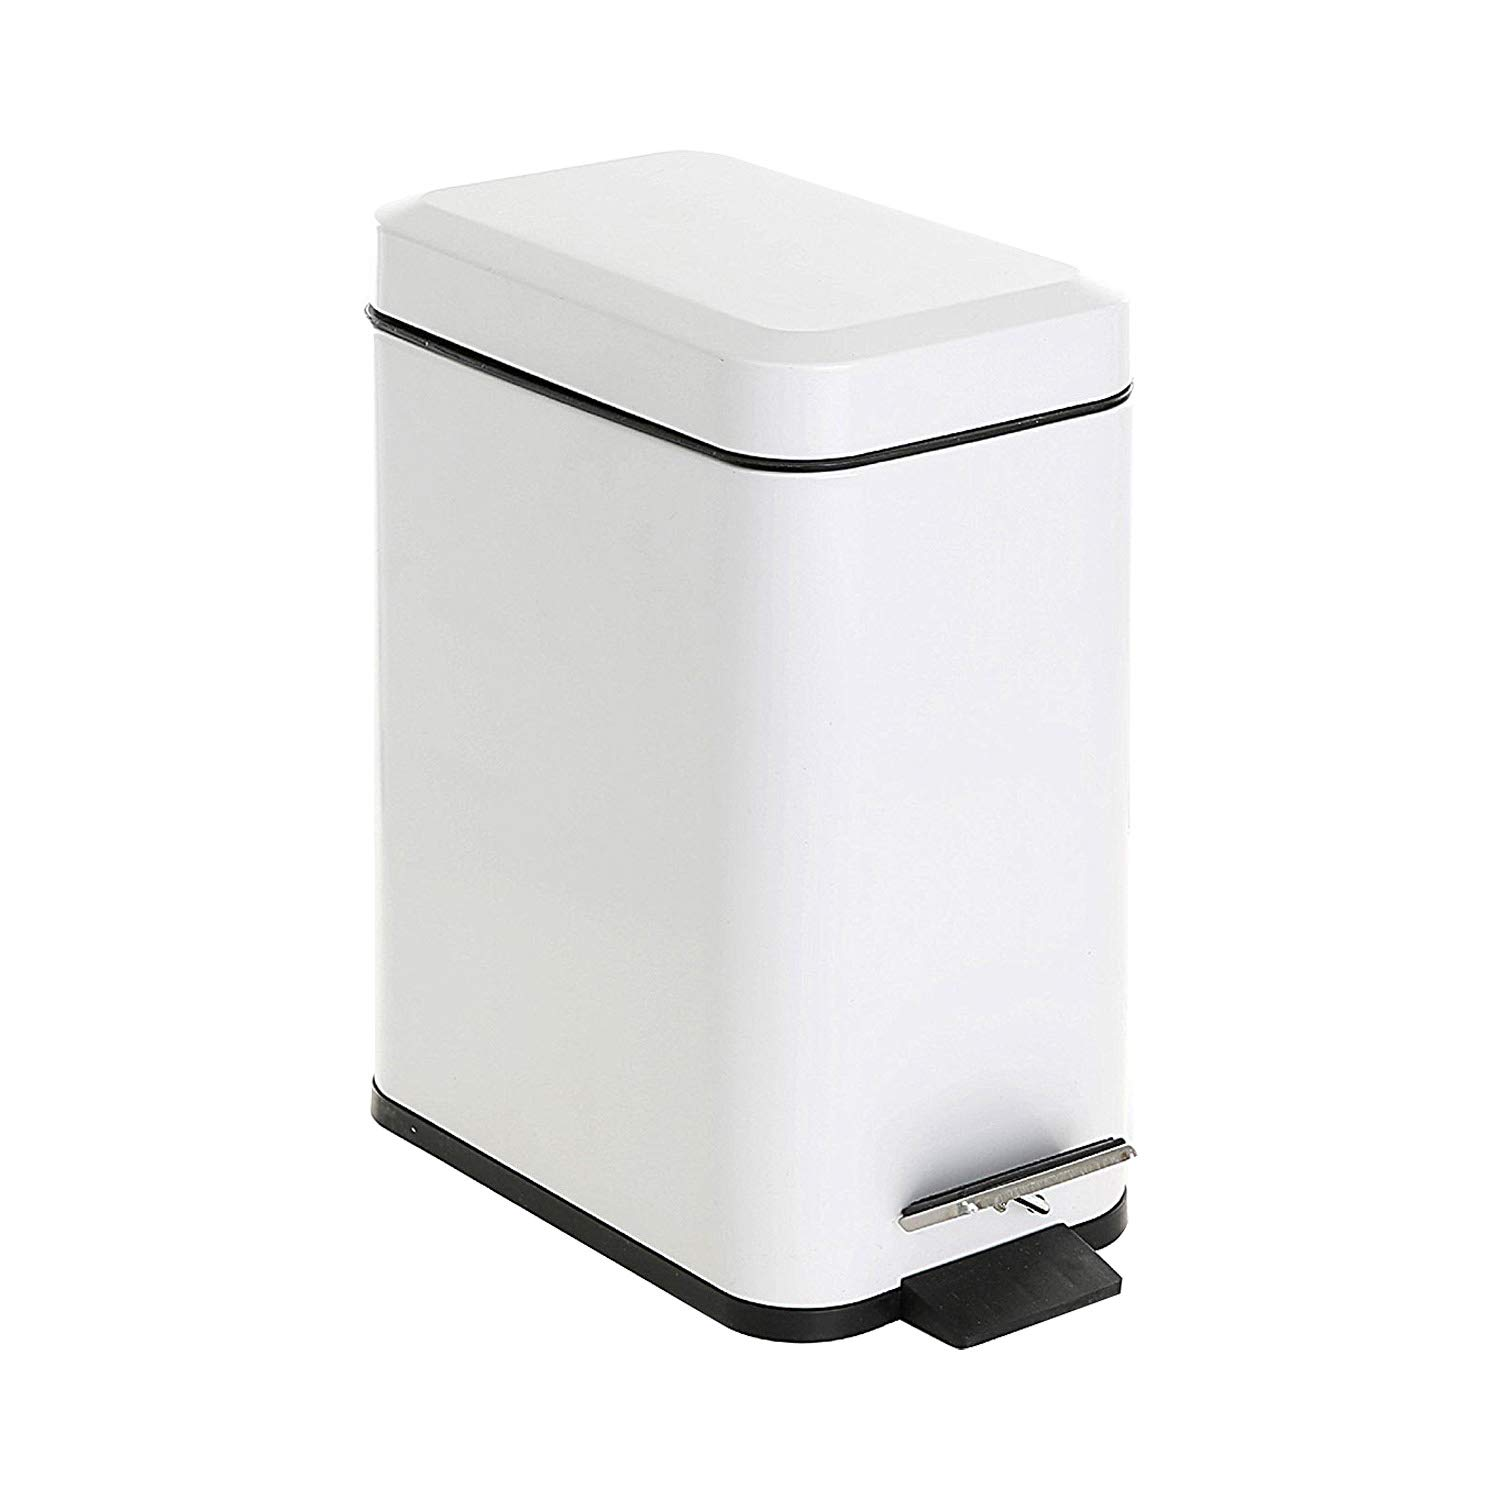 GiniHome Office Bin, Small Trash Can for Kitchen & Bathroom, Waste Basket-Soft Close, Waterproof and Easy to Clean-5 Liter/1.3 Gallon (White) Cuboid S Step Lids